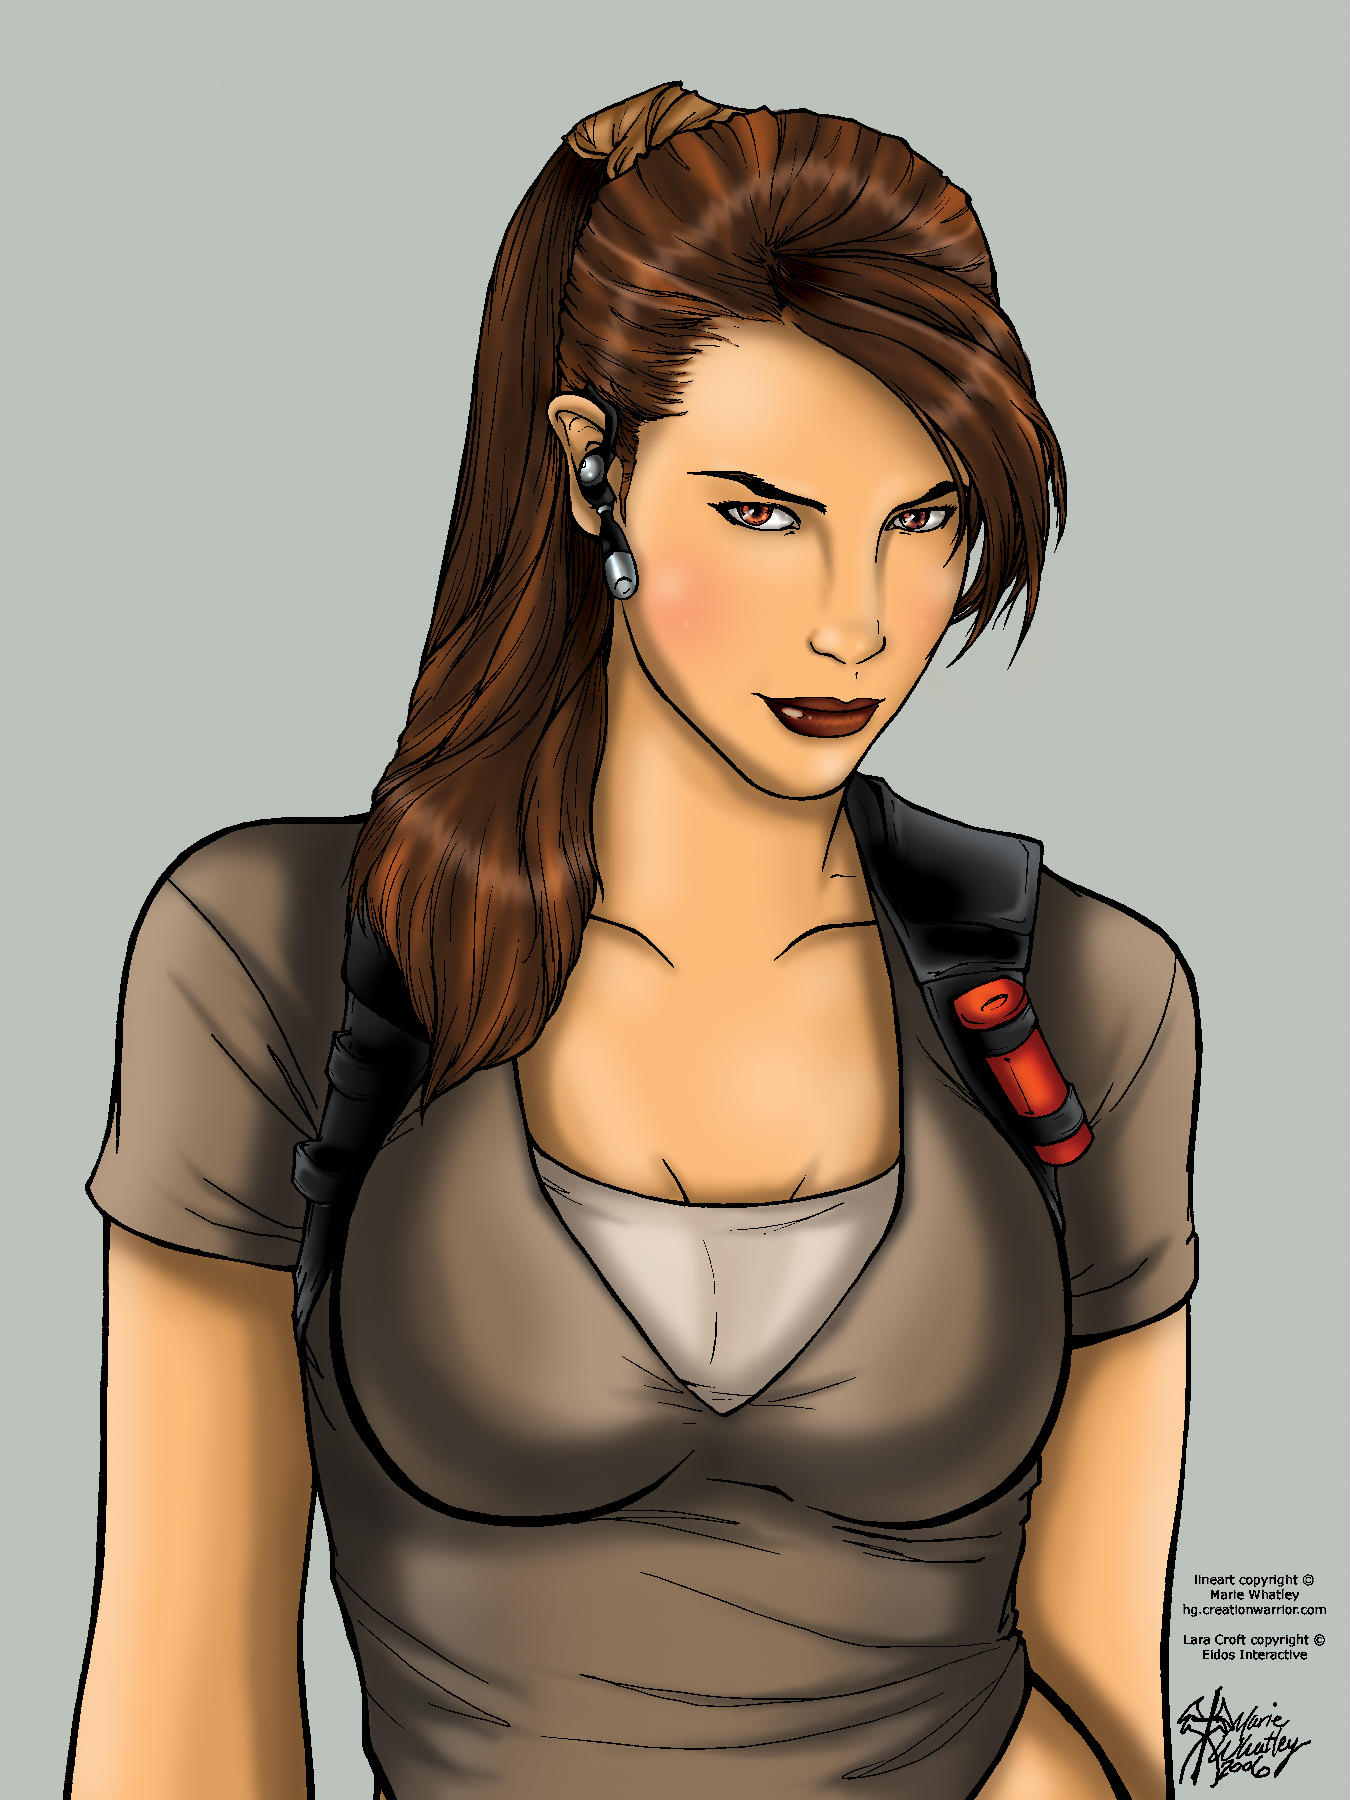 Lara Croft by OhSadface